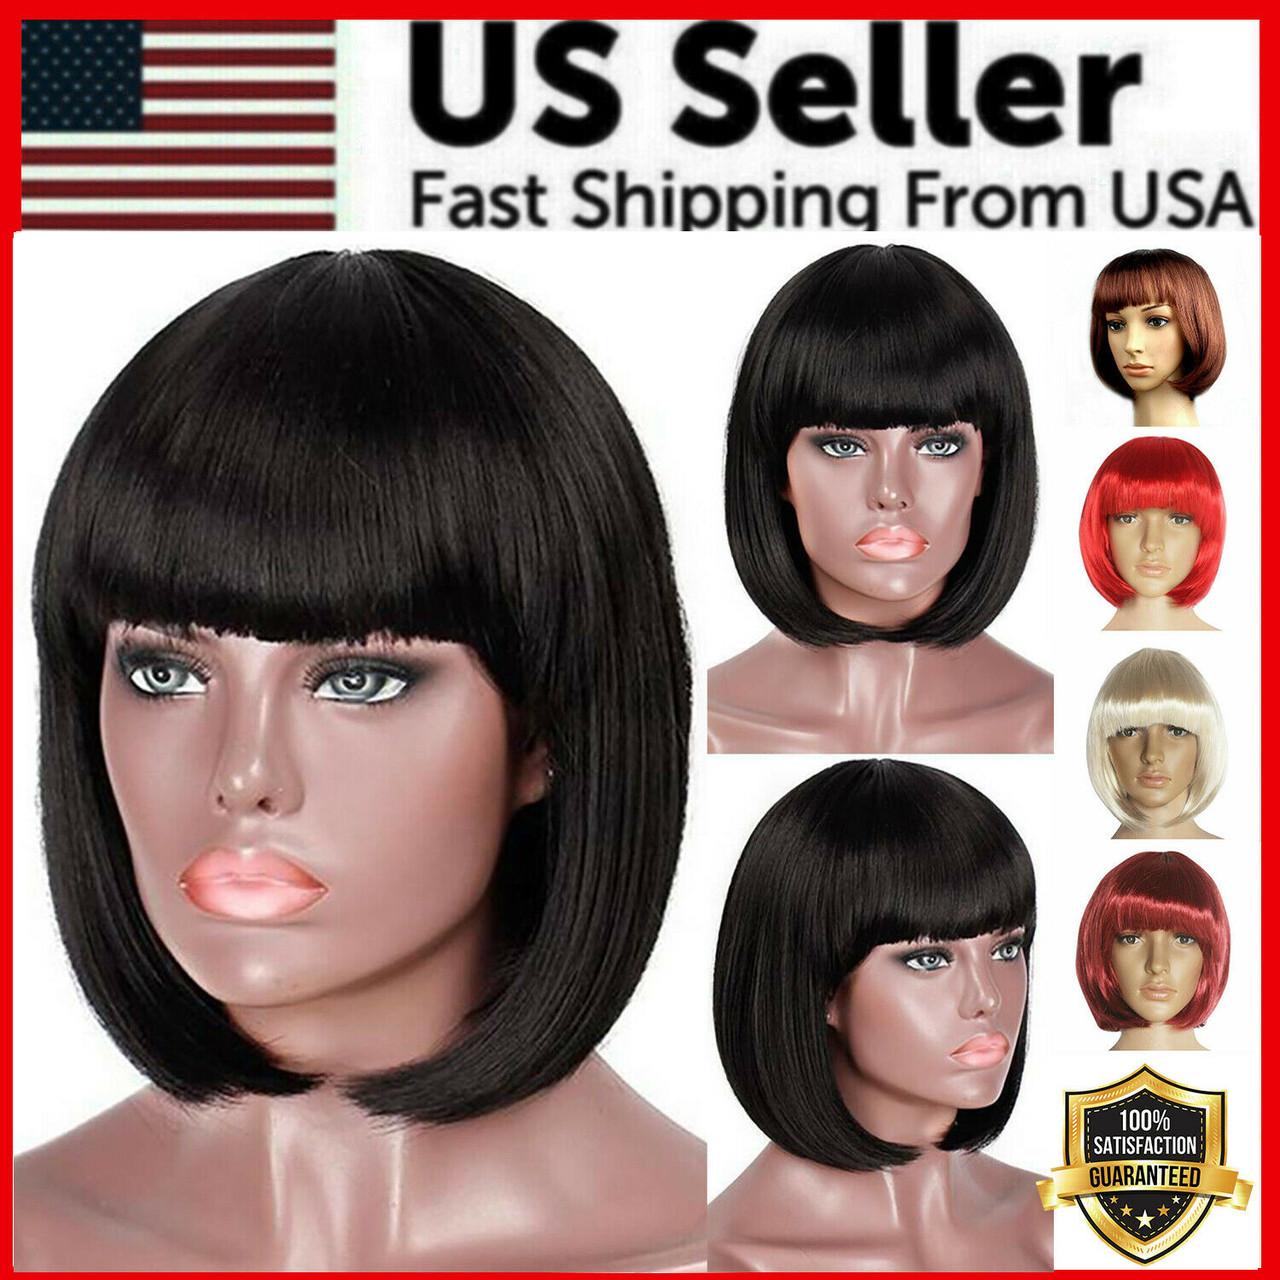 Lady Girl Bob Wig Women's Short Straight Bangs Full Hair Wigs Cosplay Party New